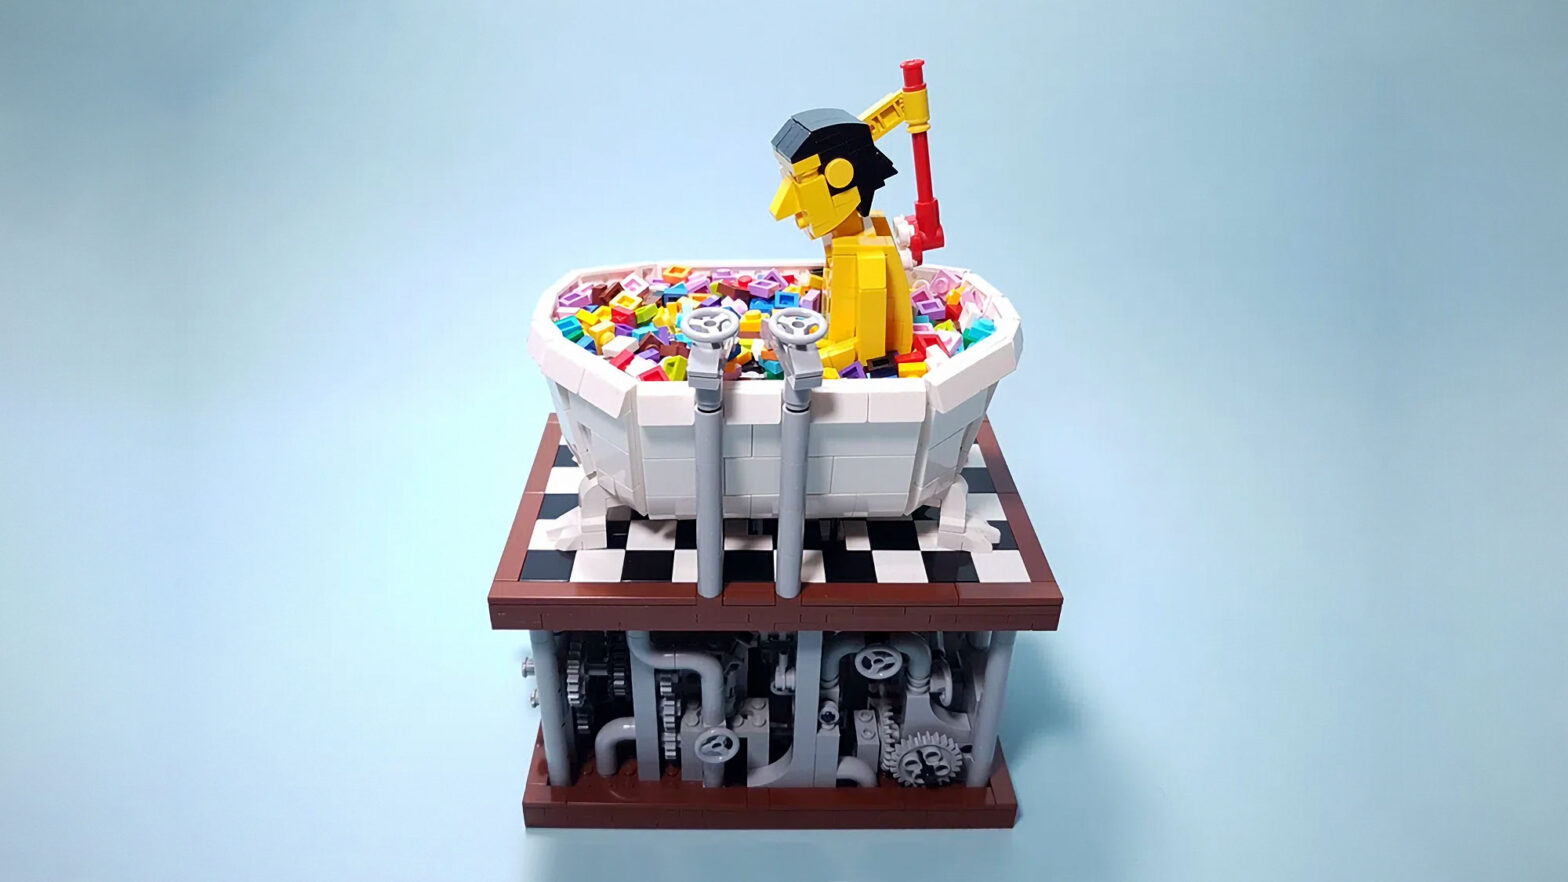 Bath Time LEGO Kinetic Art Sculpture by TonyFlow76